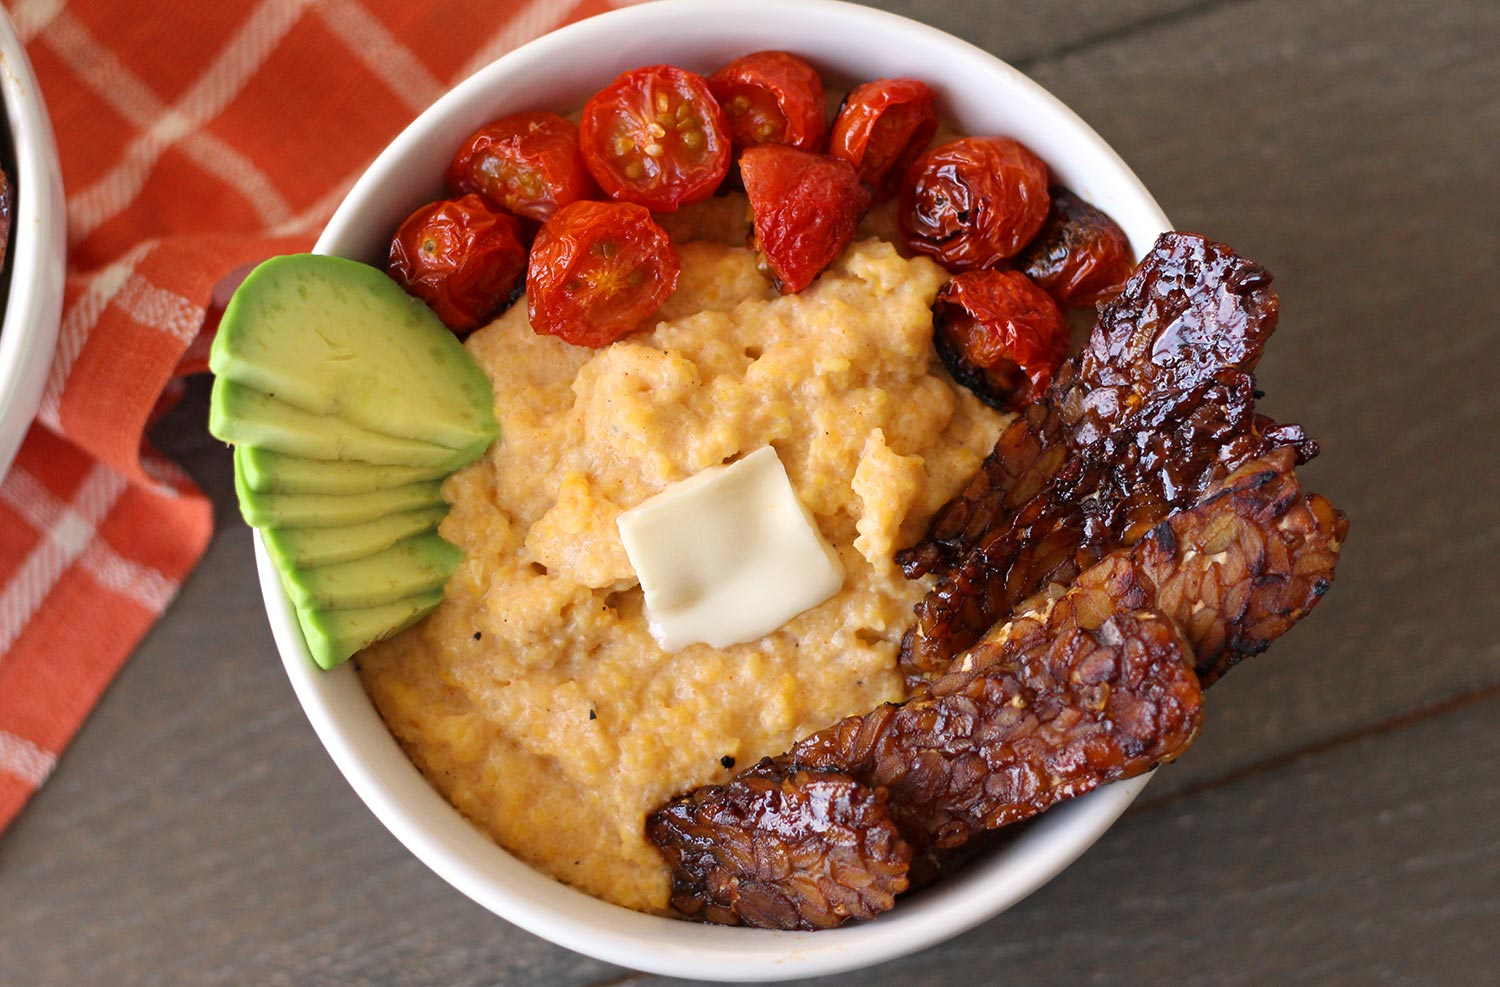 These creamy vegan grits are a delicious plant-based take on a Southern breakfast staple. Also gluten-free, these cheesy vegan grits recipe is topped with tempeh bacon and broiled tomatoes.